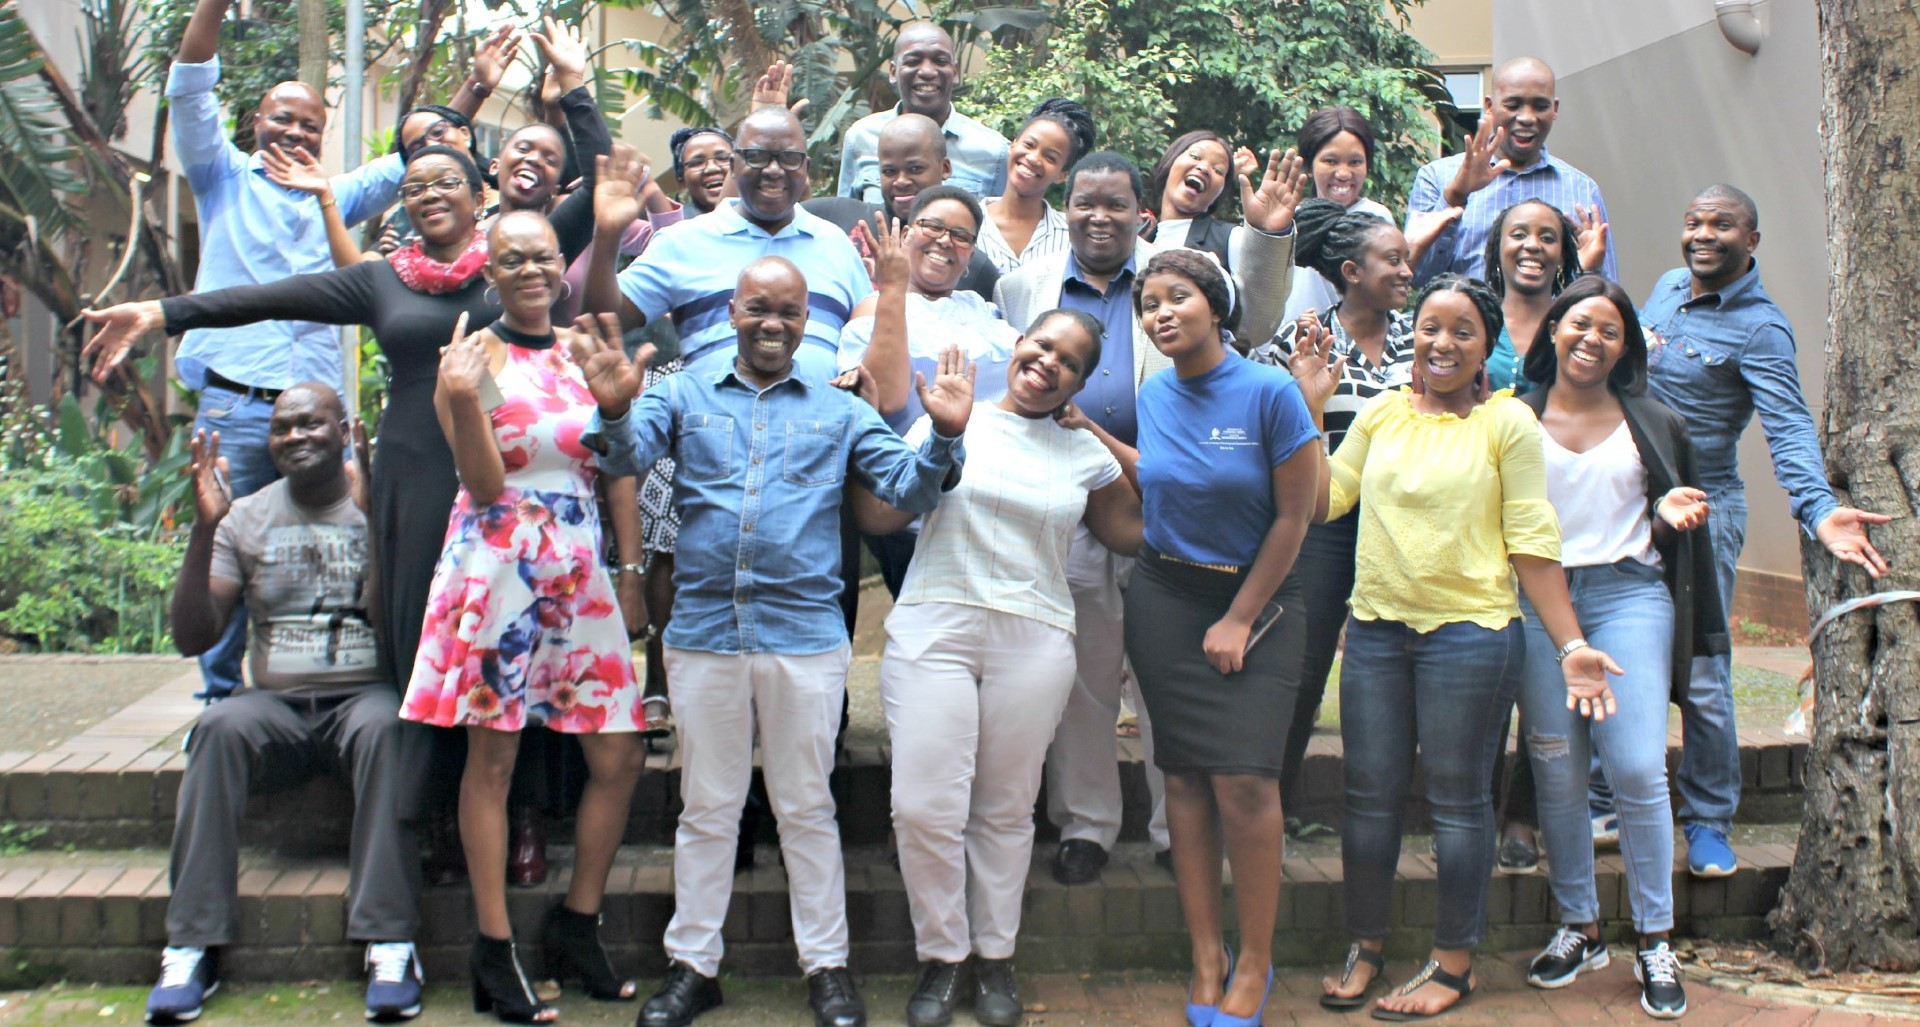 Academics, translators, interpreters, language practitioners, staff and students from the Durban University of Technology and UKZN at the establishment of the KwaZulu-Natal Chapter of the SA Translators Institute.